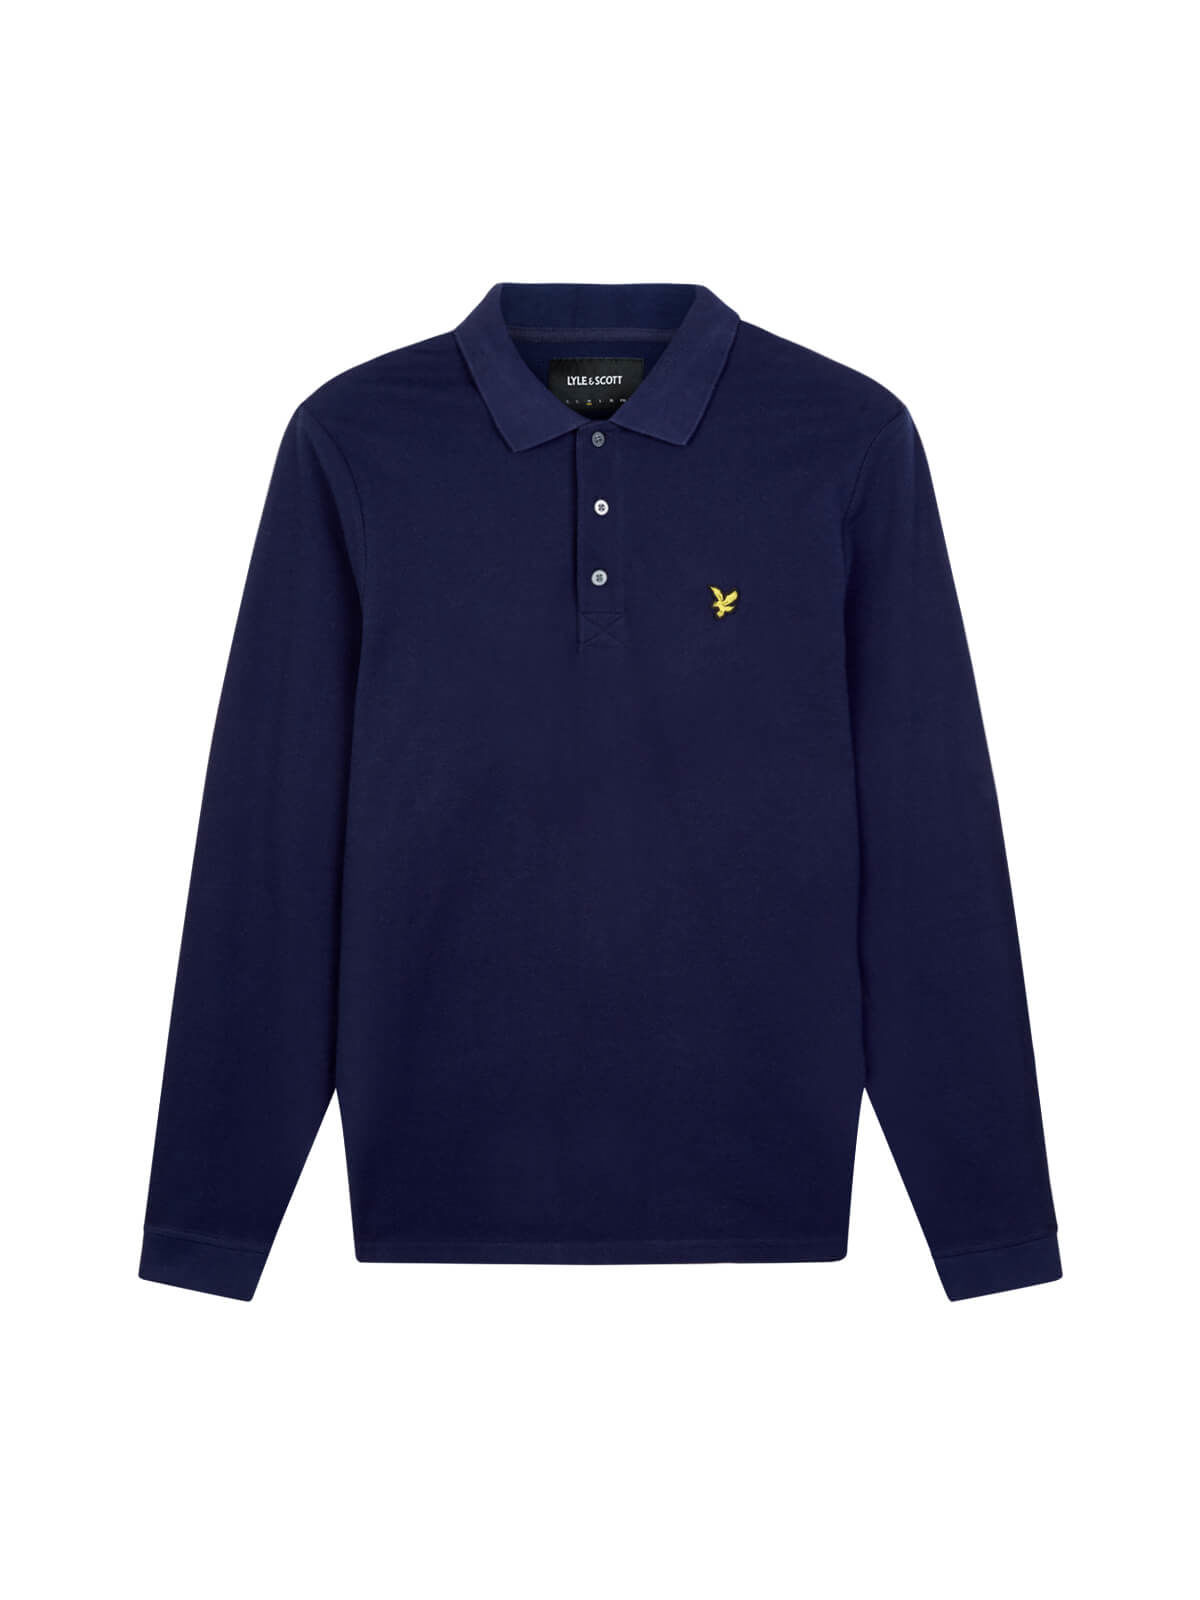 Lyle and Scott Navy Long Sleeve Polo Shirt